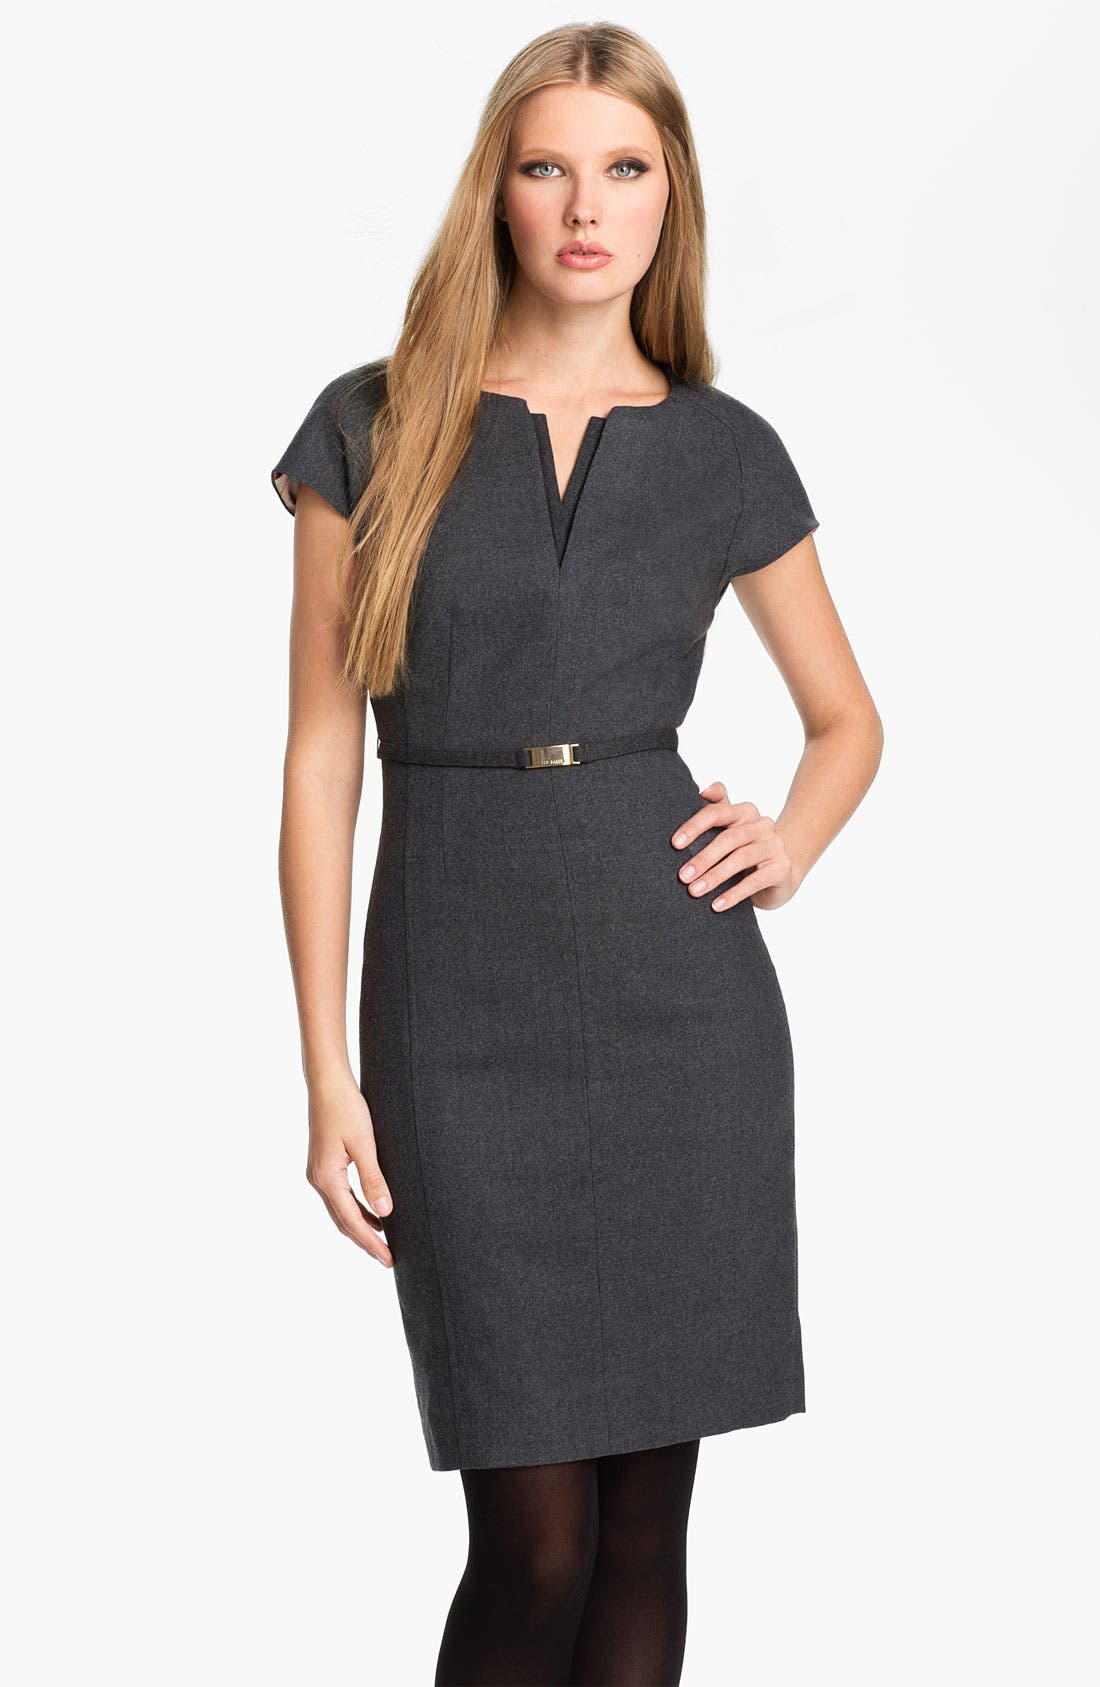 Alternate Image 1 Selected - Ted Baker London 'Neyoad' Wool Sheath Dress